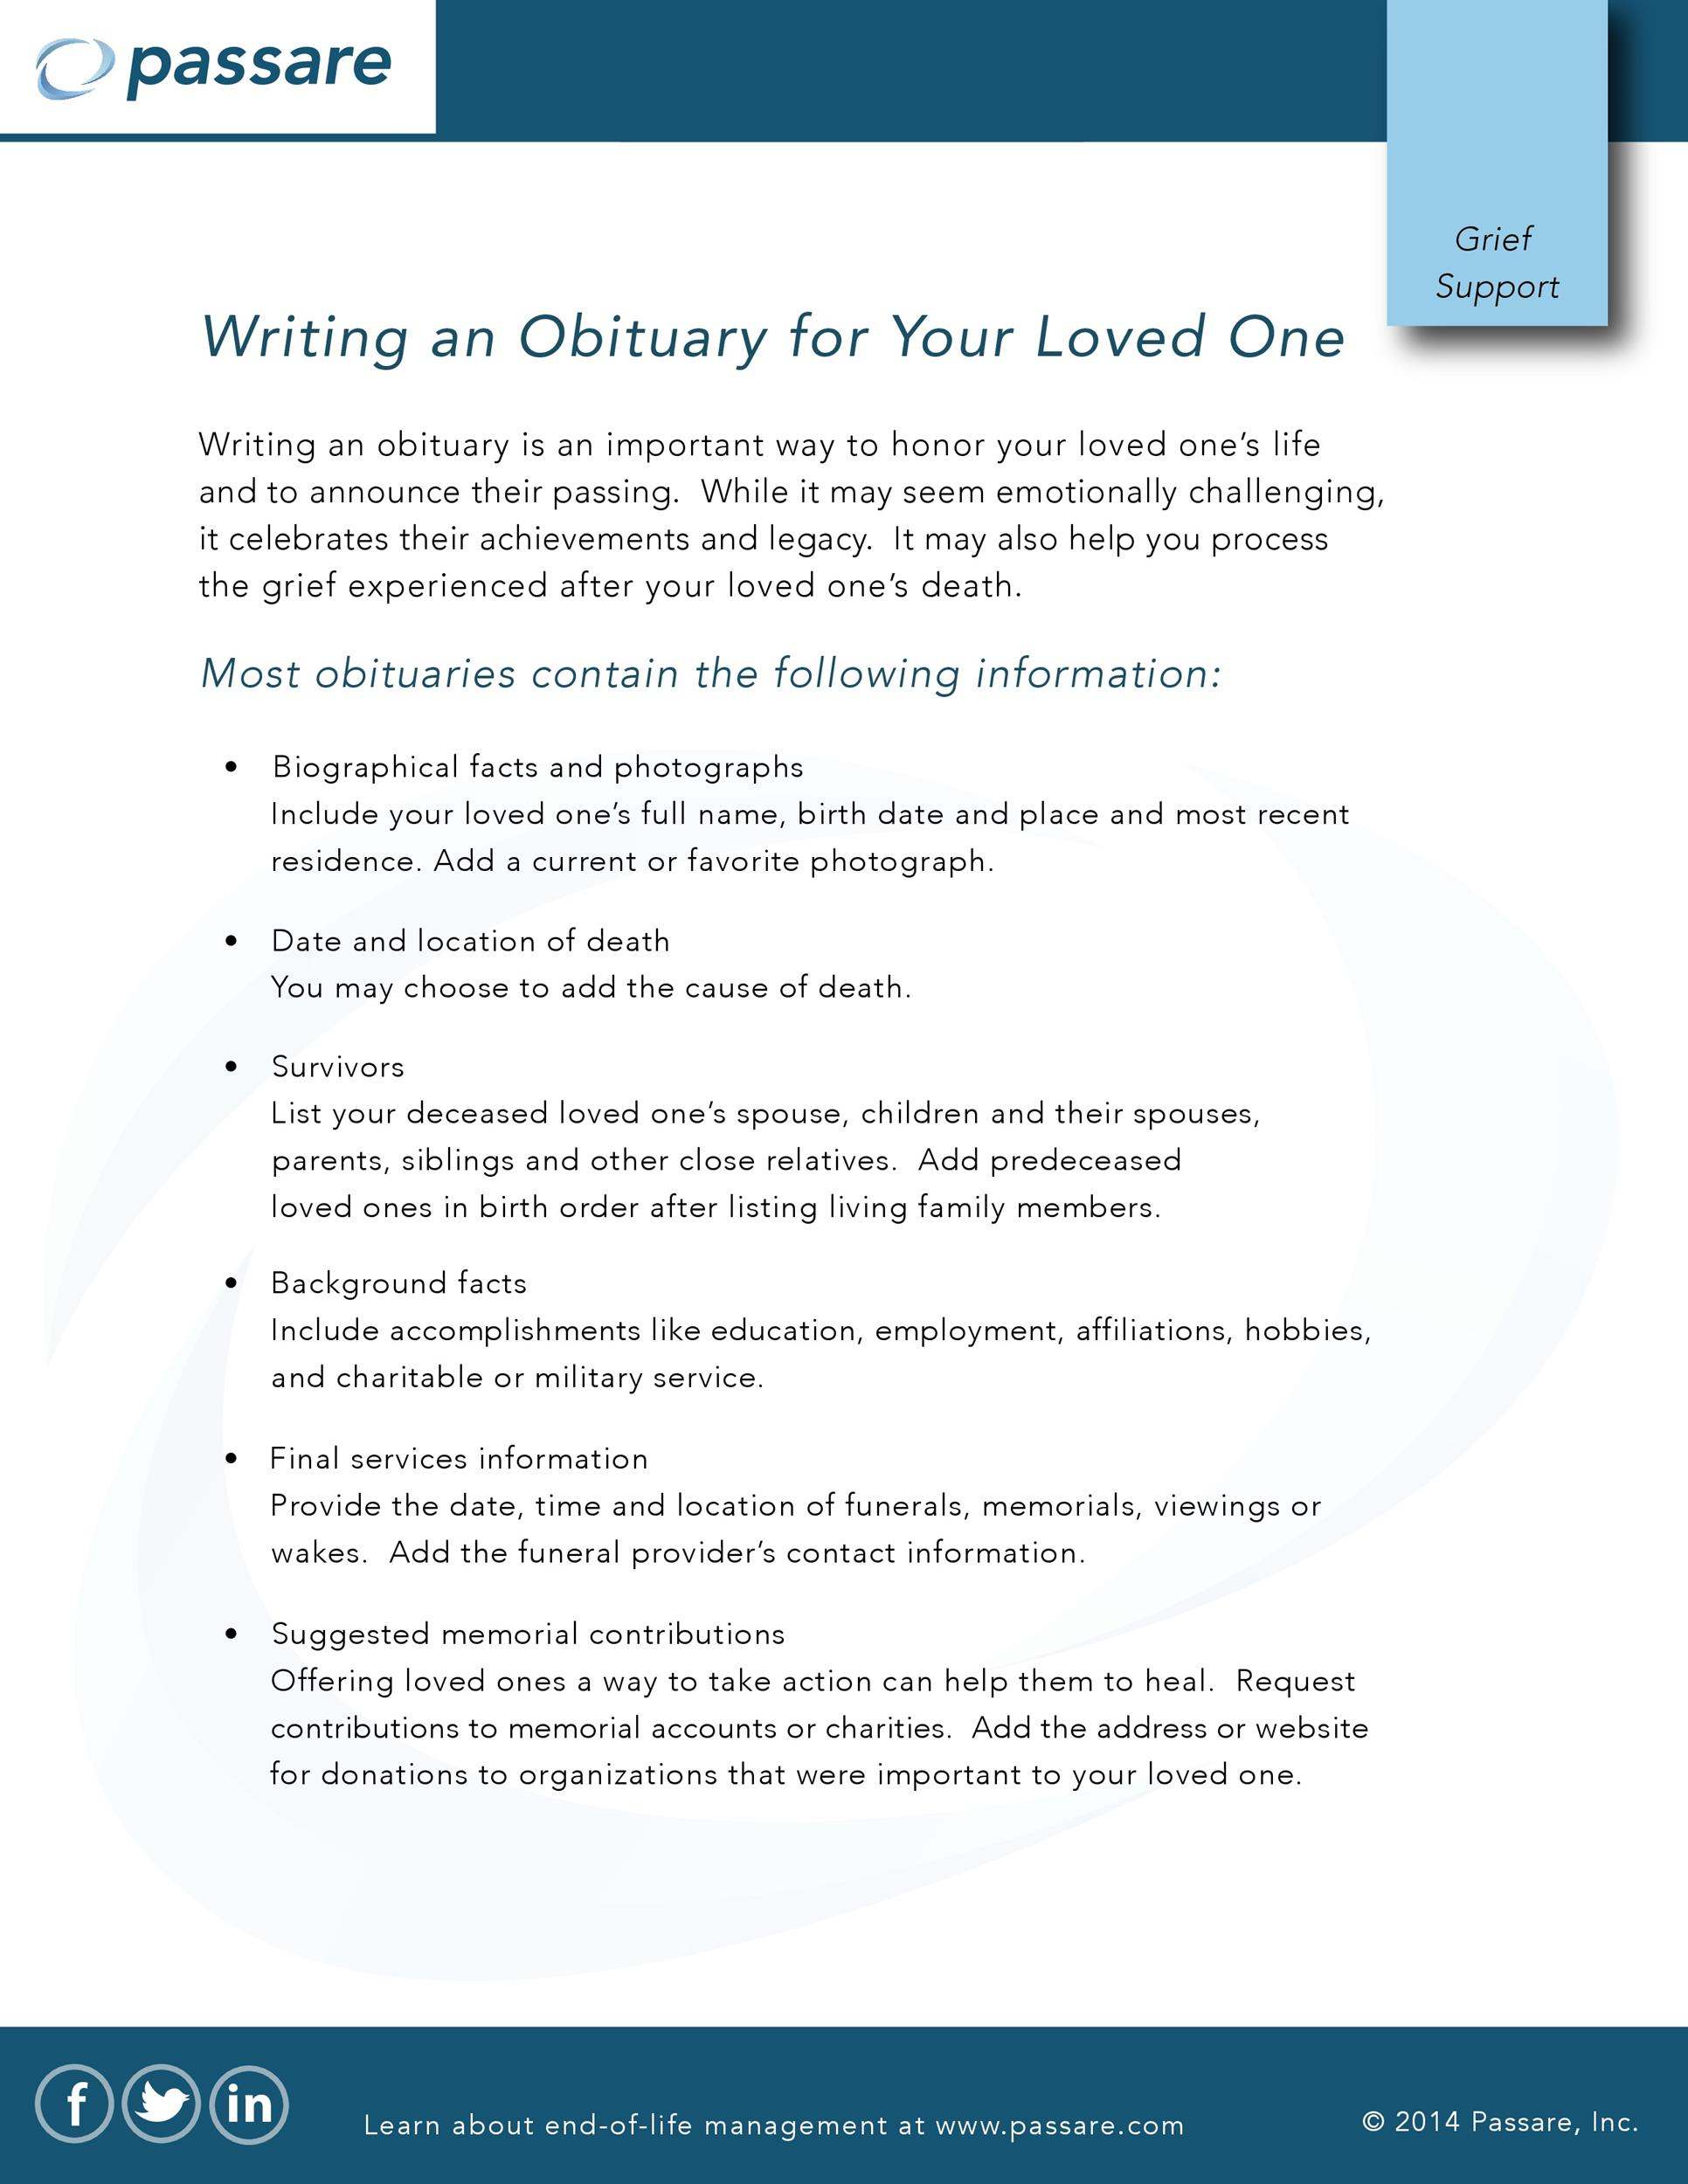 Free Writing an Obituary for Your Loved One